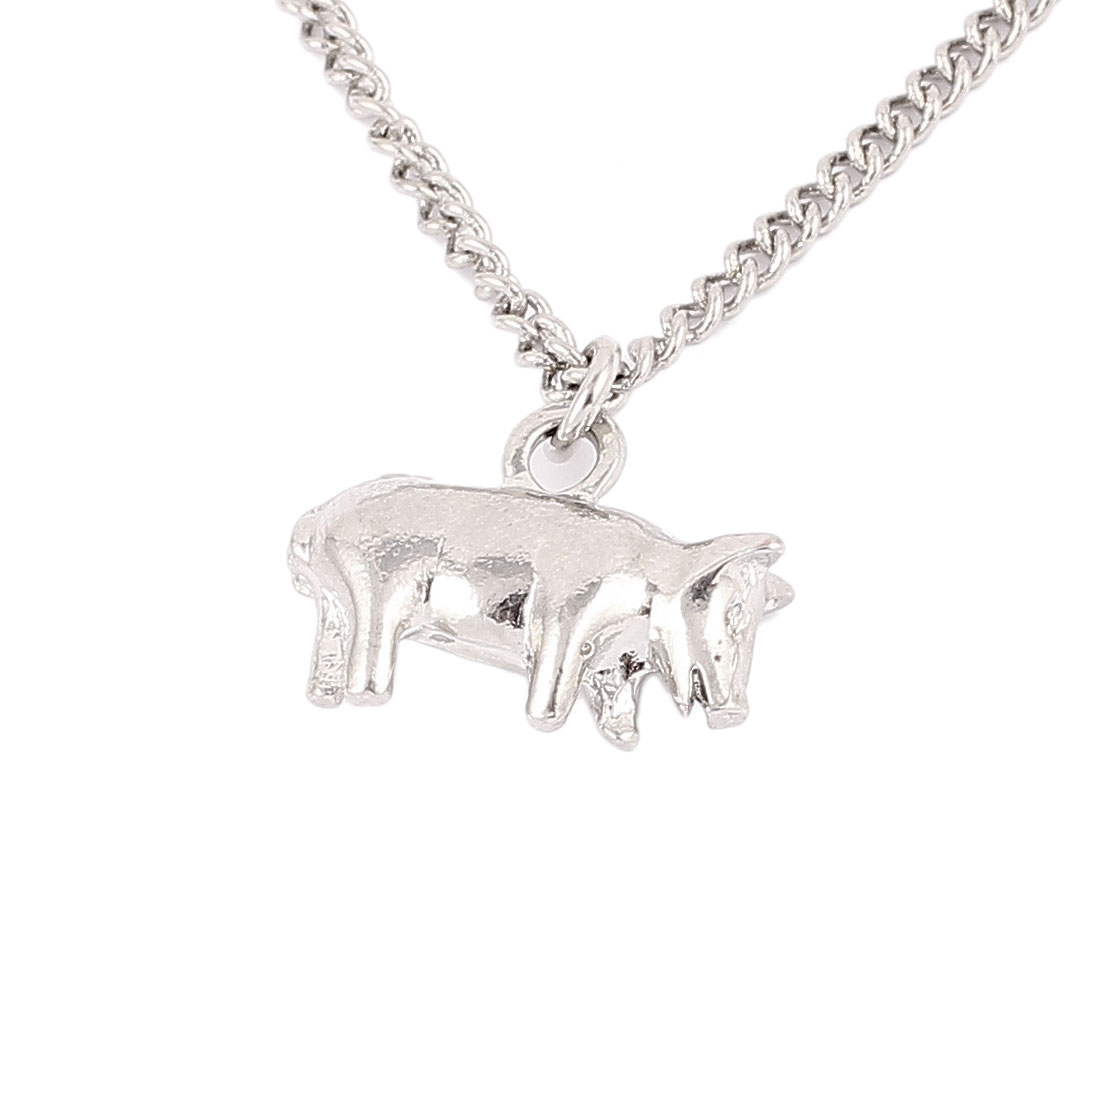 Silver Tone Metal Wolf Pendant Lobster Buckle Strip Link Slim Chain Necklace Neckwear Collar for Ladies Women